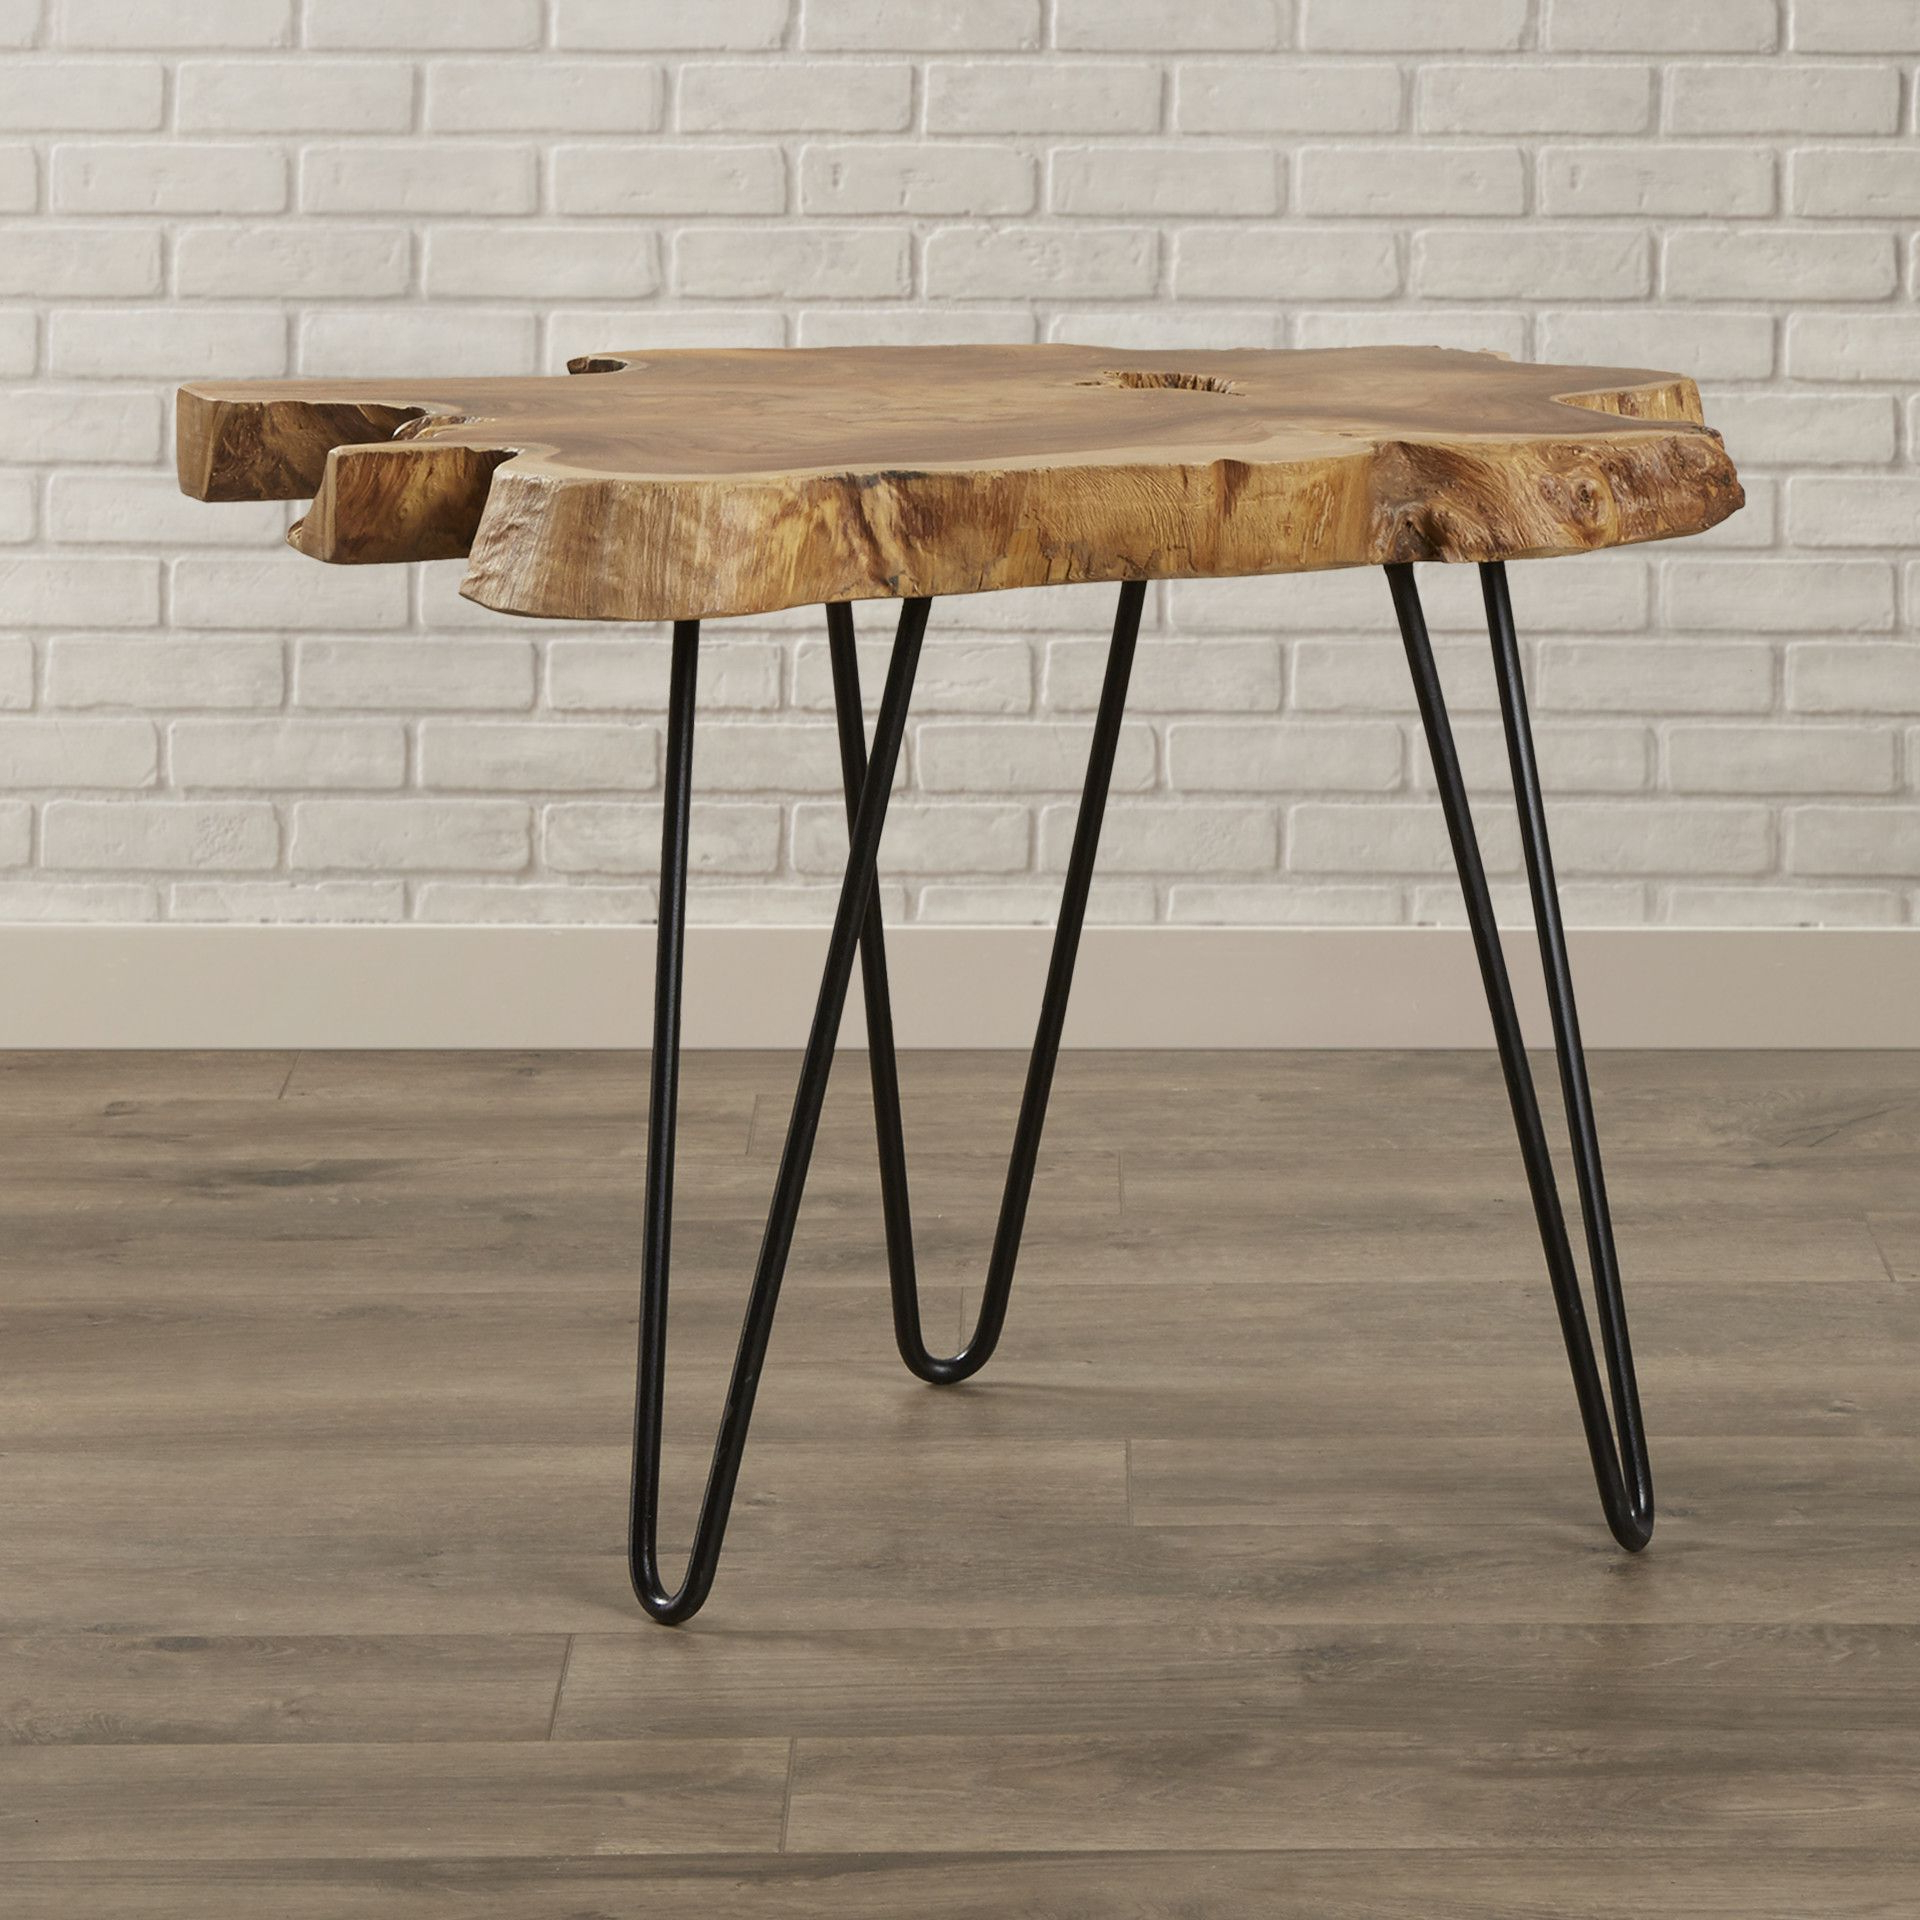 End Tables, Table in Well known Acacia Wood Medley-Medium Dining Tables With Metal Base